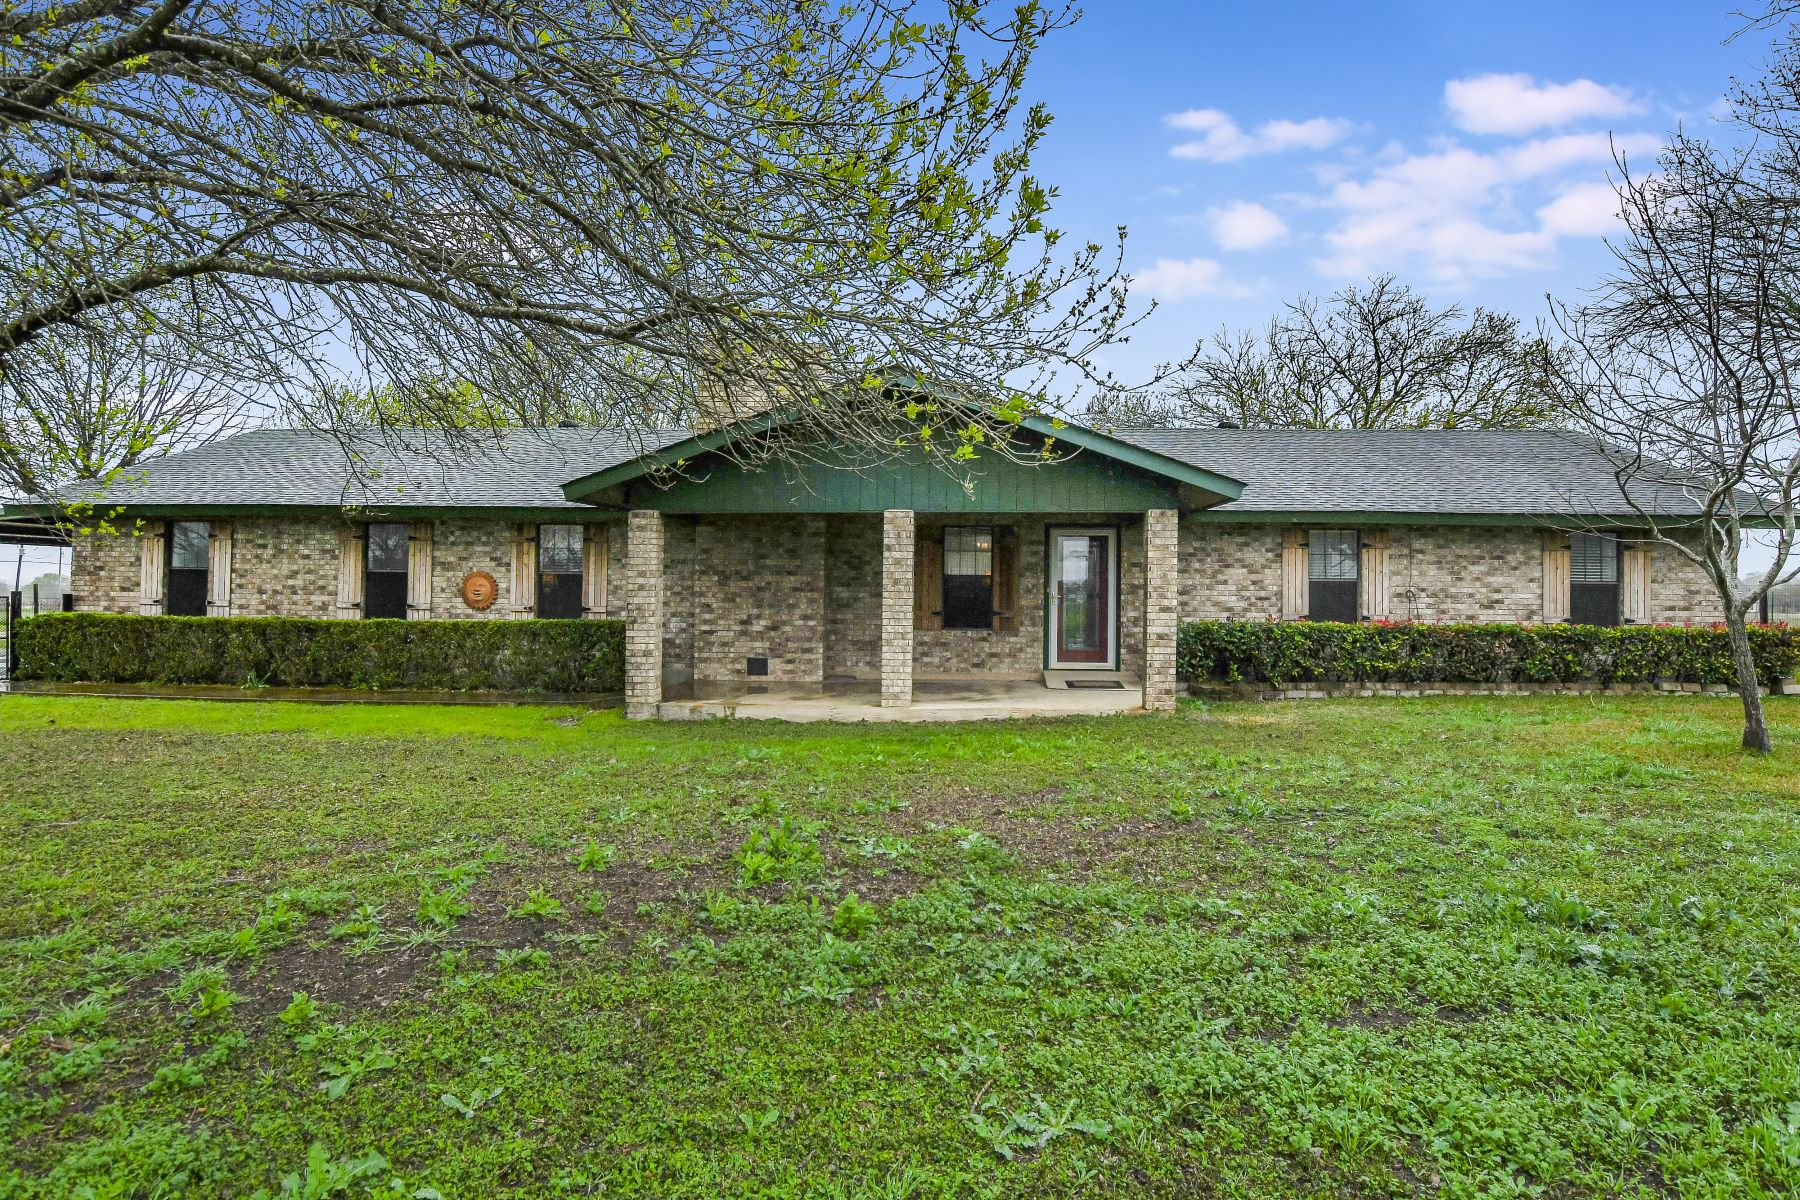 Single Family Homes for Sale at Rare Find On 3.5 Acres in New Braunfels 417 West Klein Road New Braunfels, Texas 78130 United States